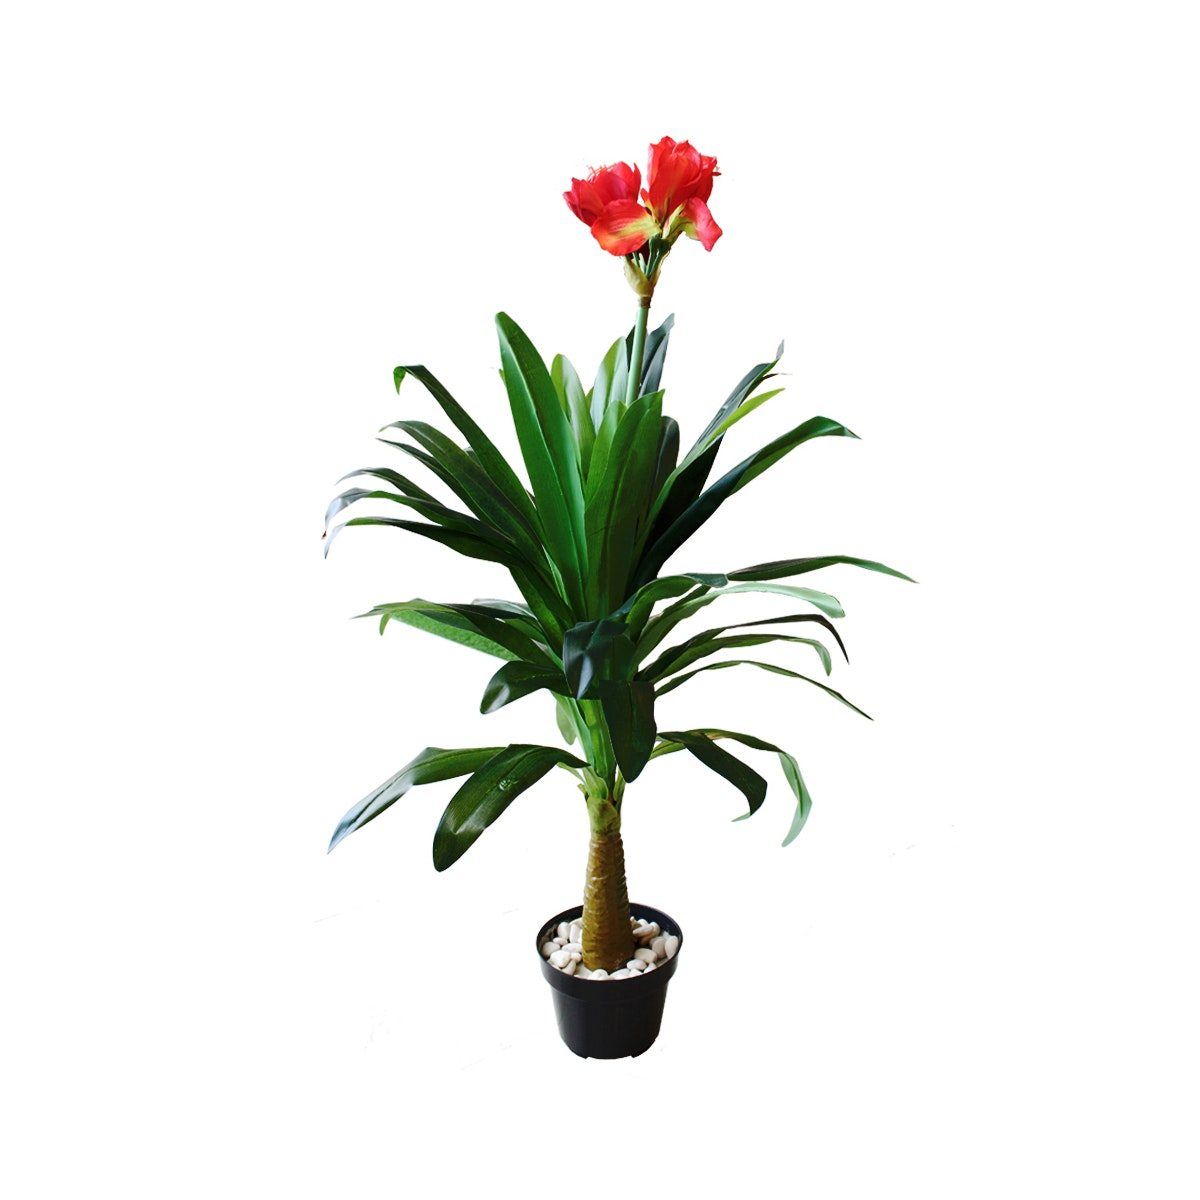 KANA FURNITURE Amaryllis Vittata A3 2395